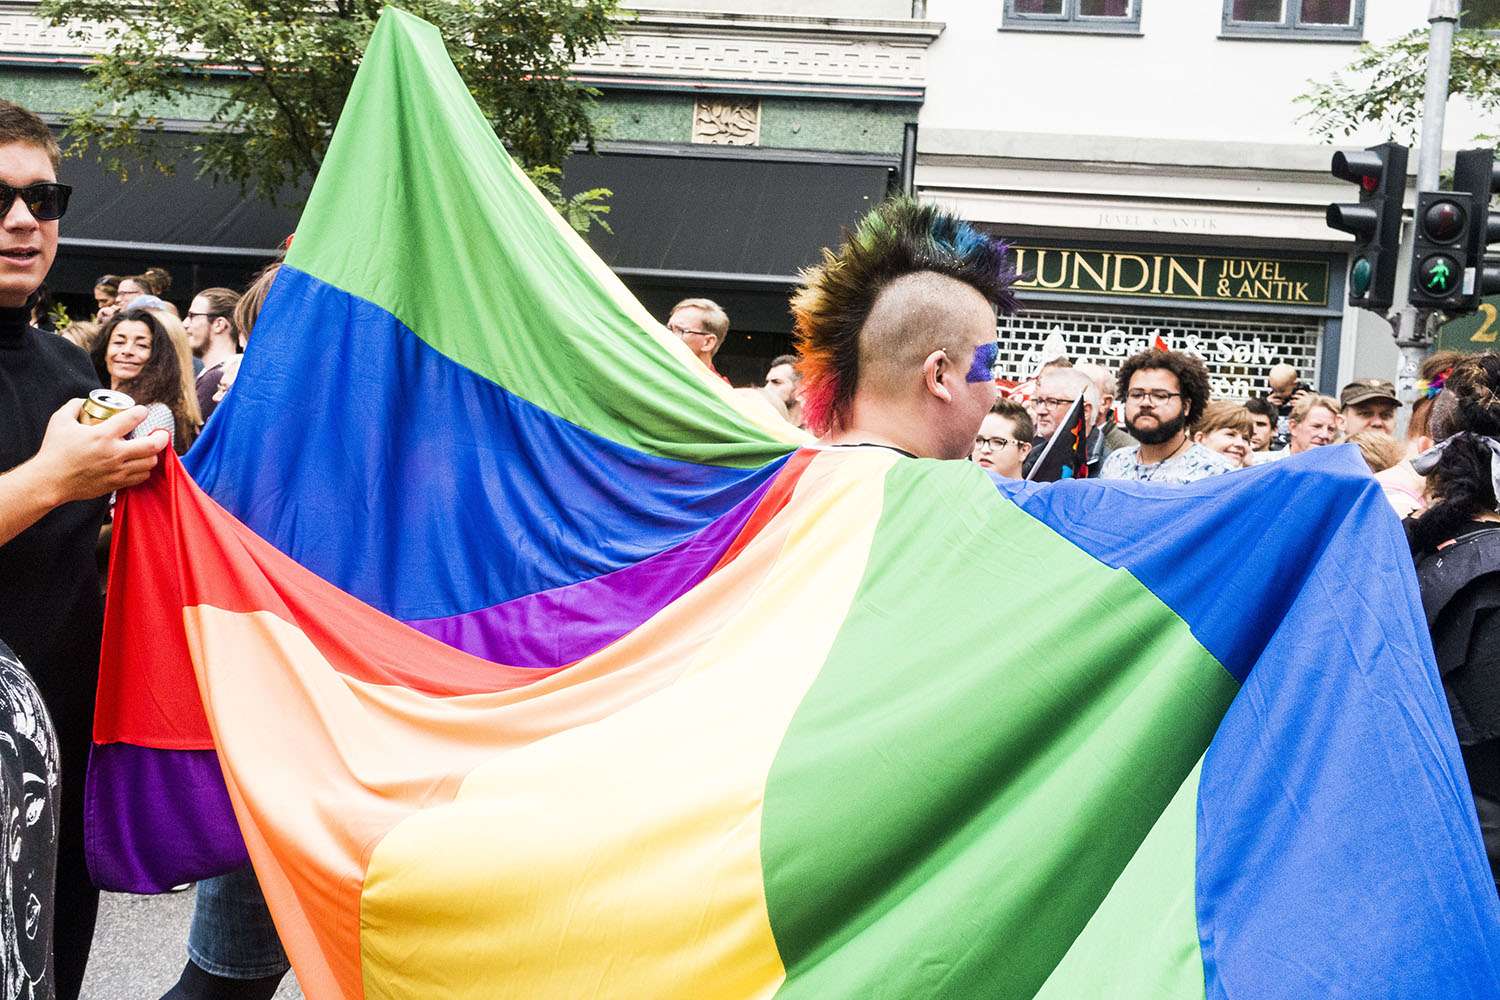 CphPride2016_HelenaLundquist_blog_5